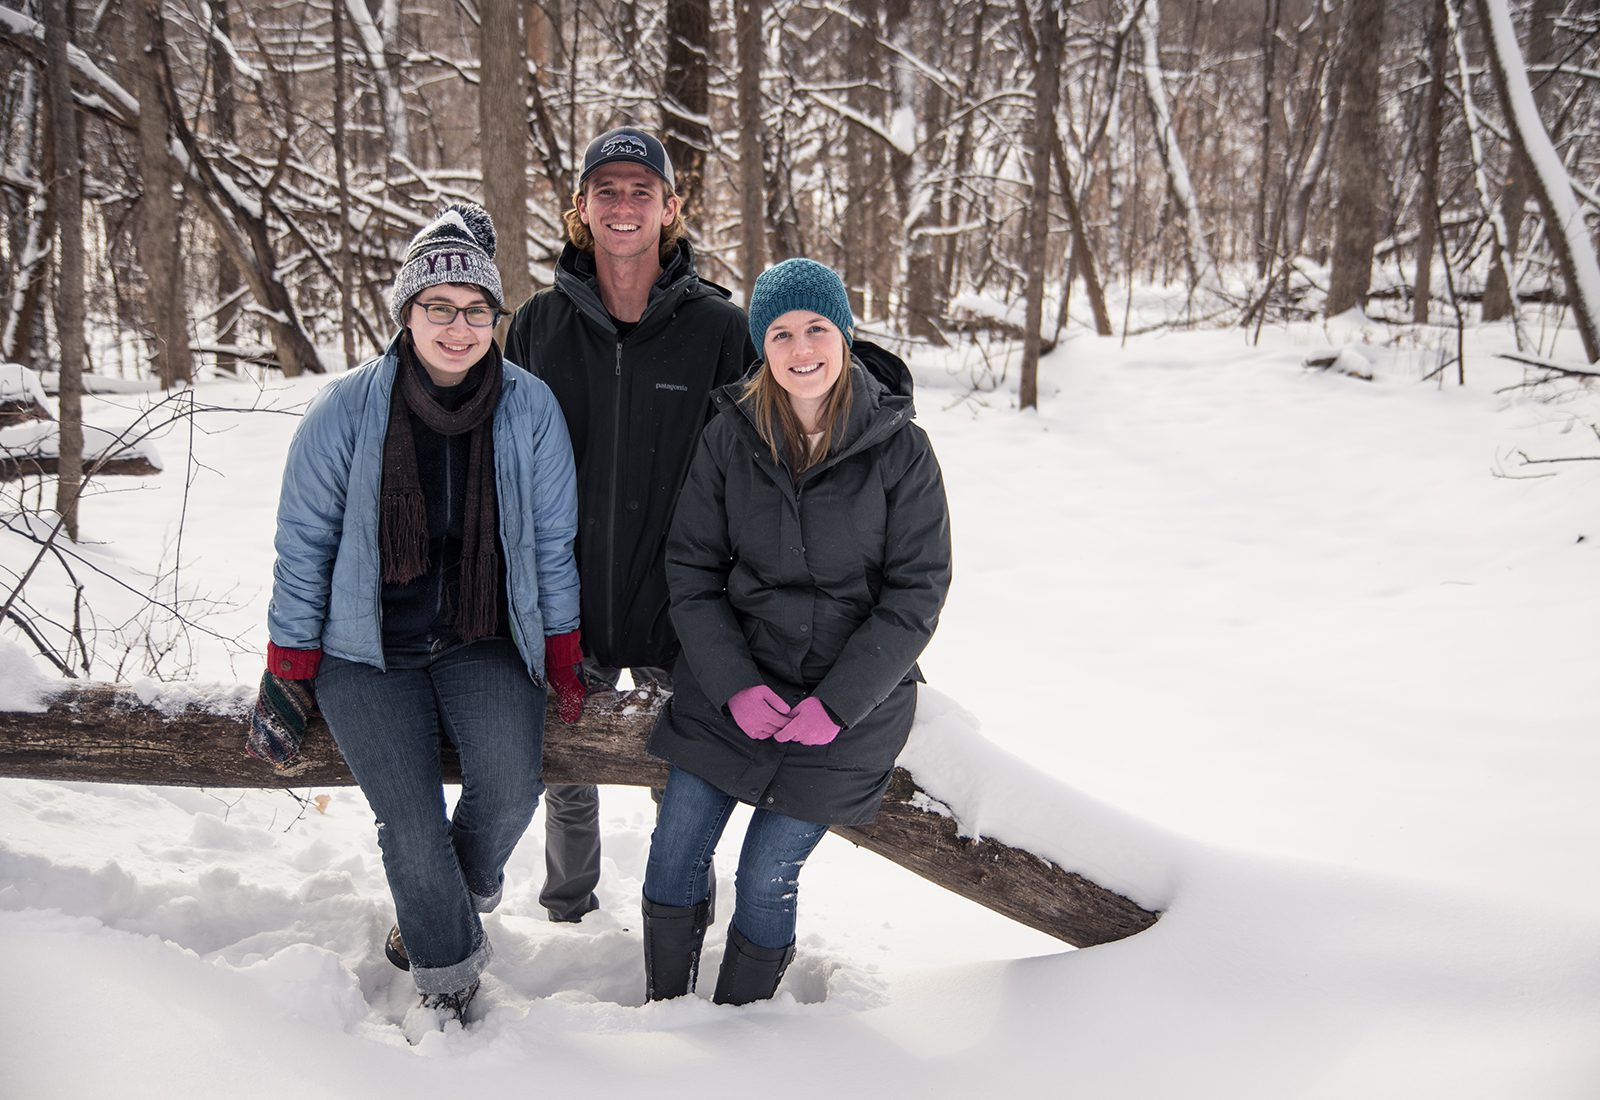 Student researchers Karina Zikan '20 and Wesley Brown '19 with Assistant Professor of Physics Alden Adolph in St. Olaf's Natural Lands.